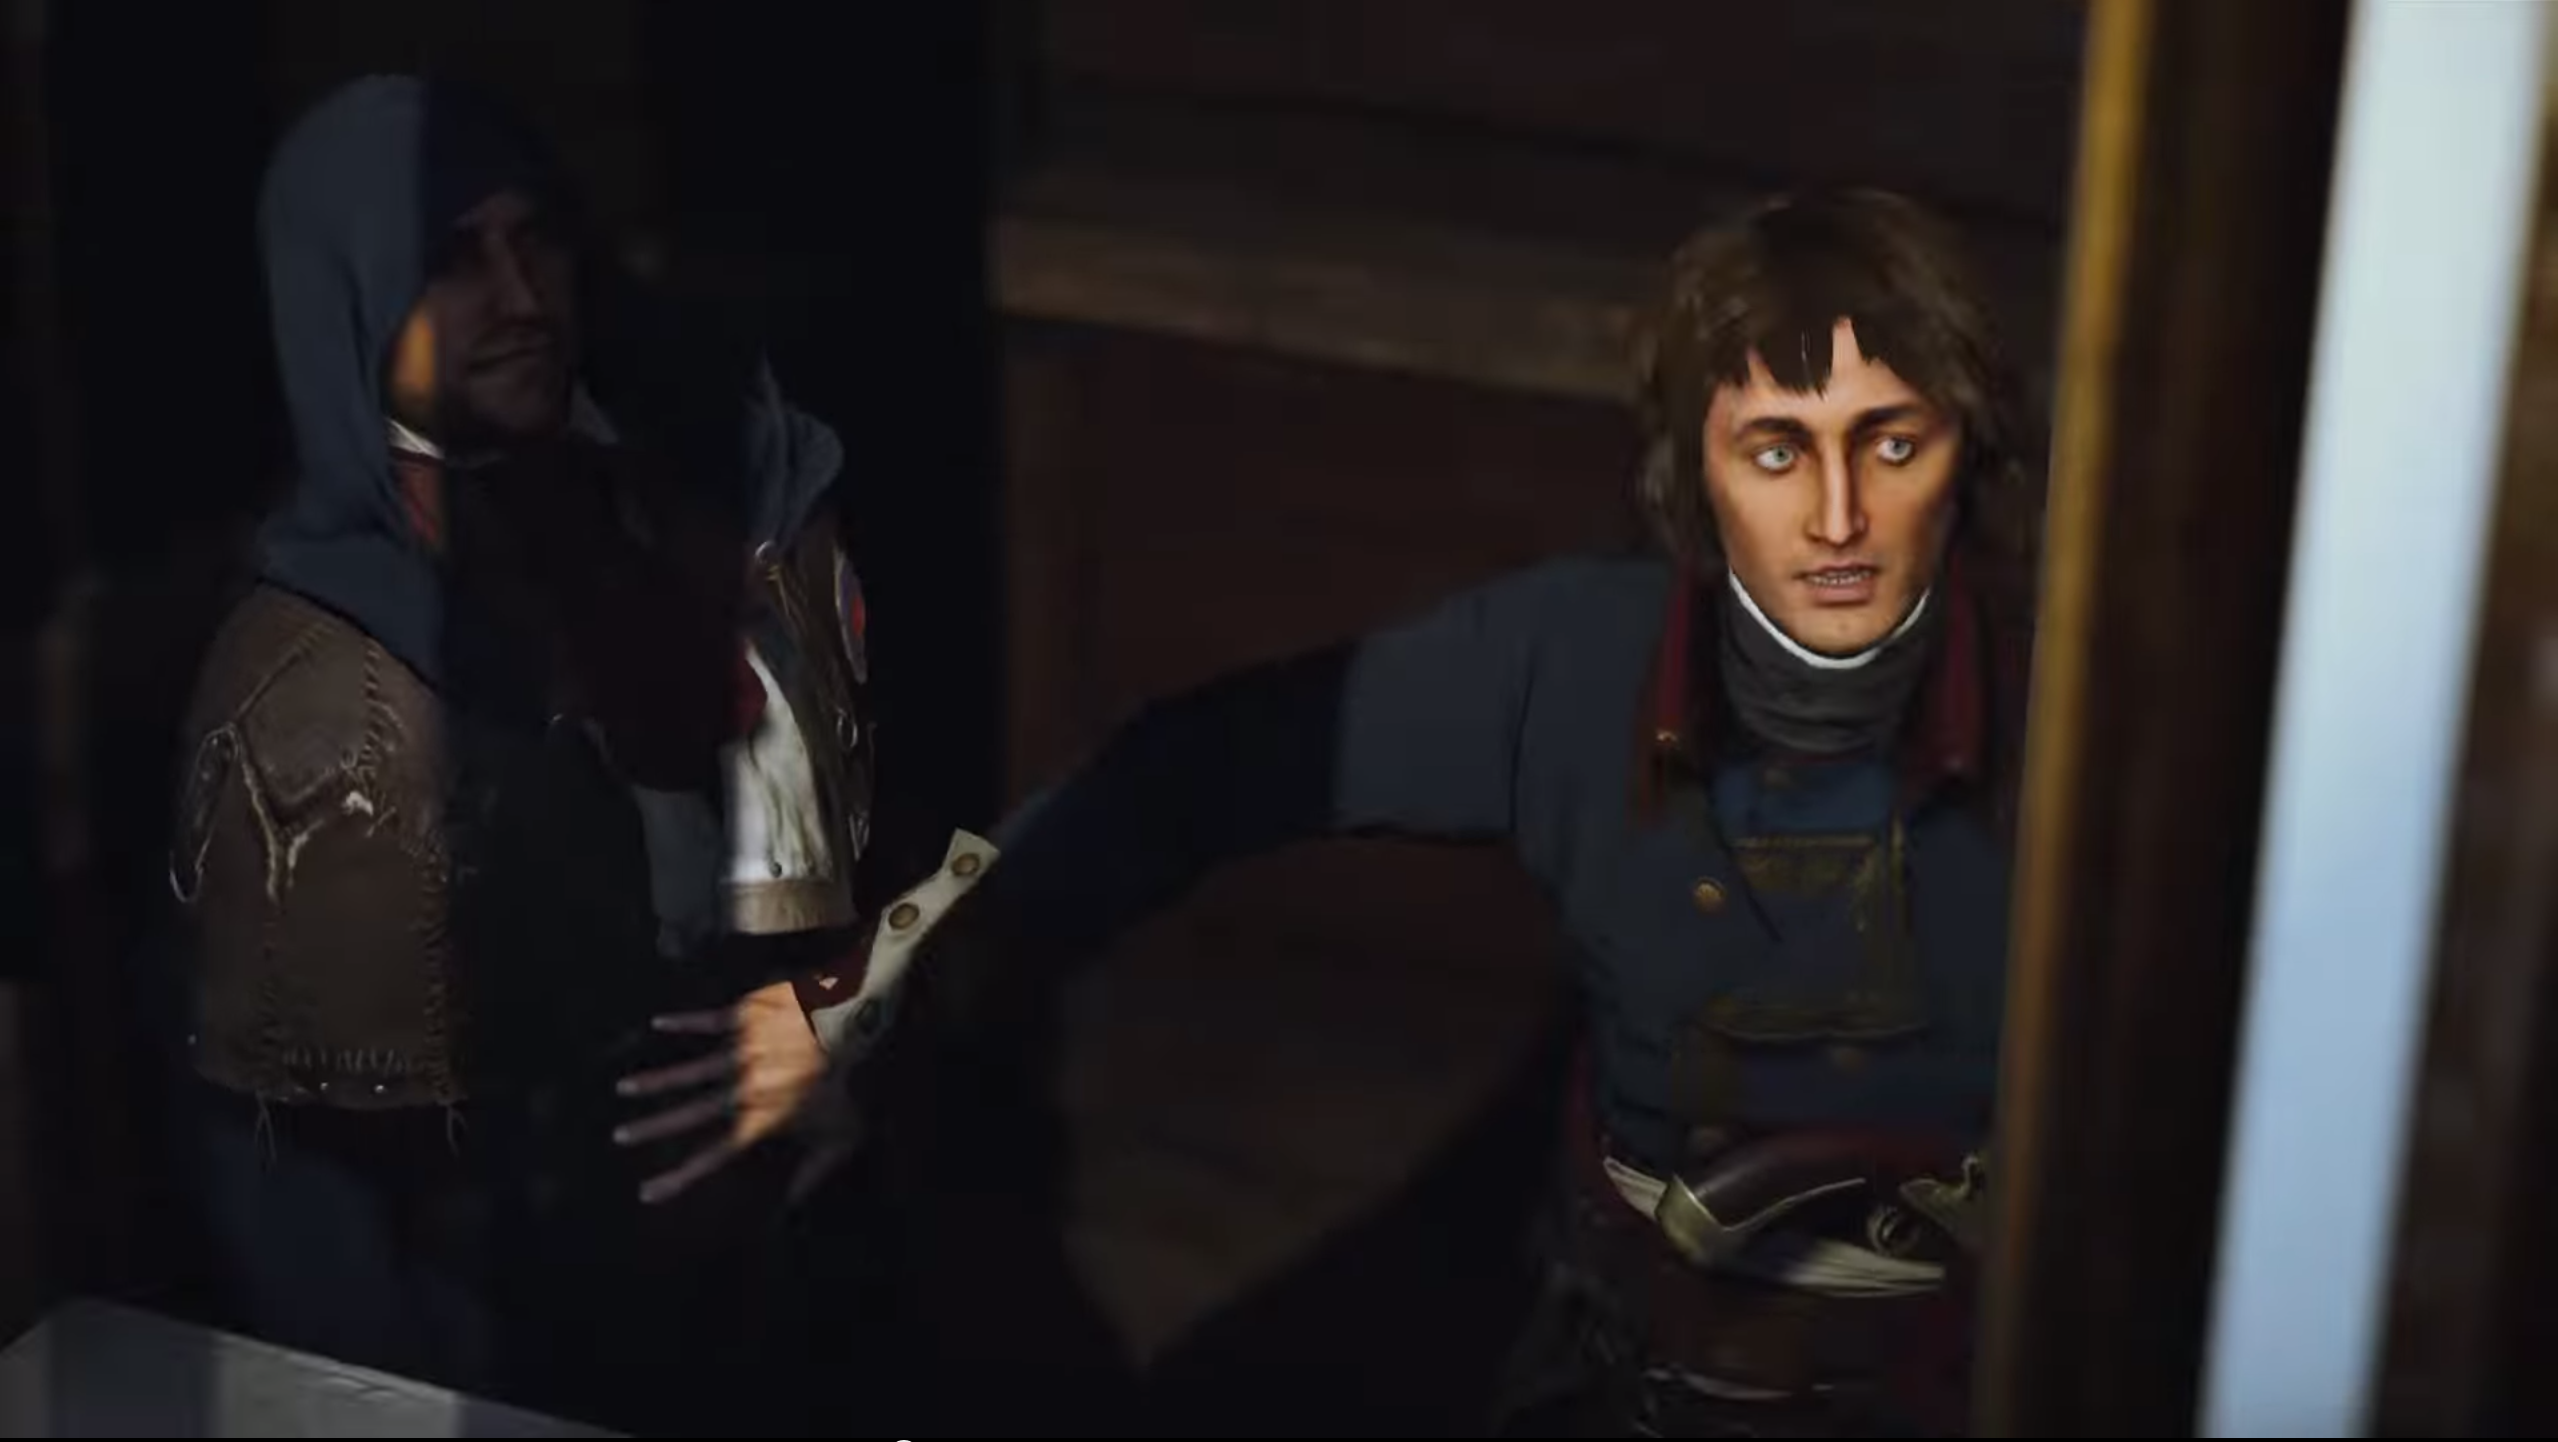 image napoleon png assassin s creed wiki fandom powered by wikia 09 34 24 2014